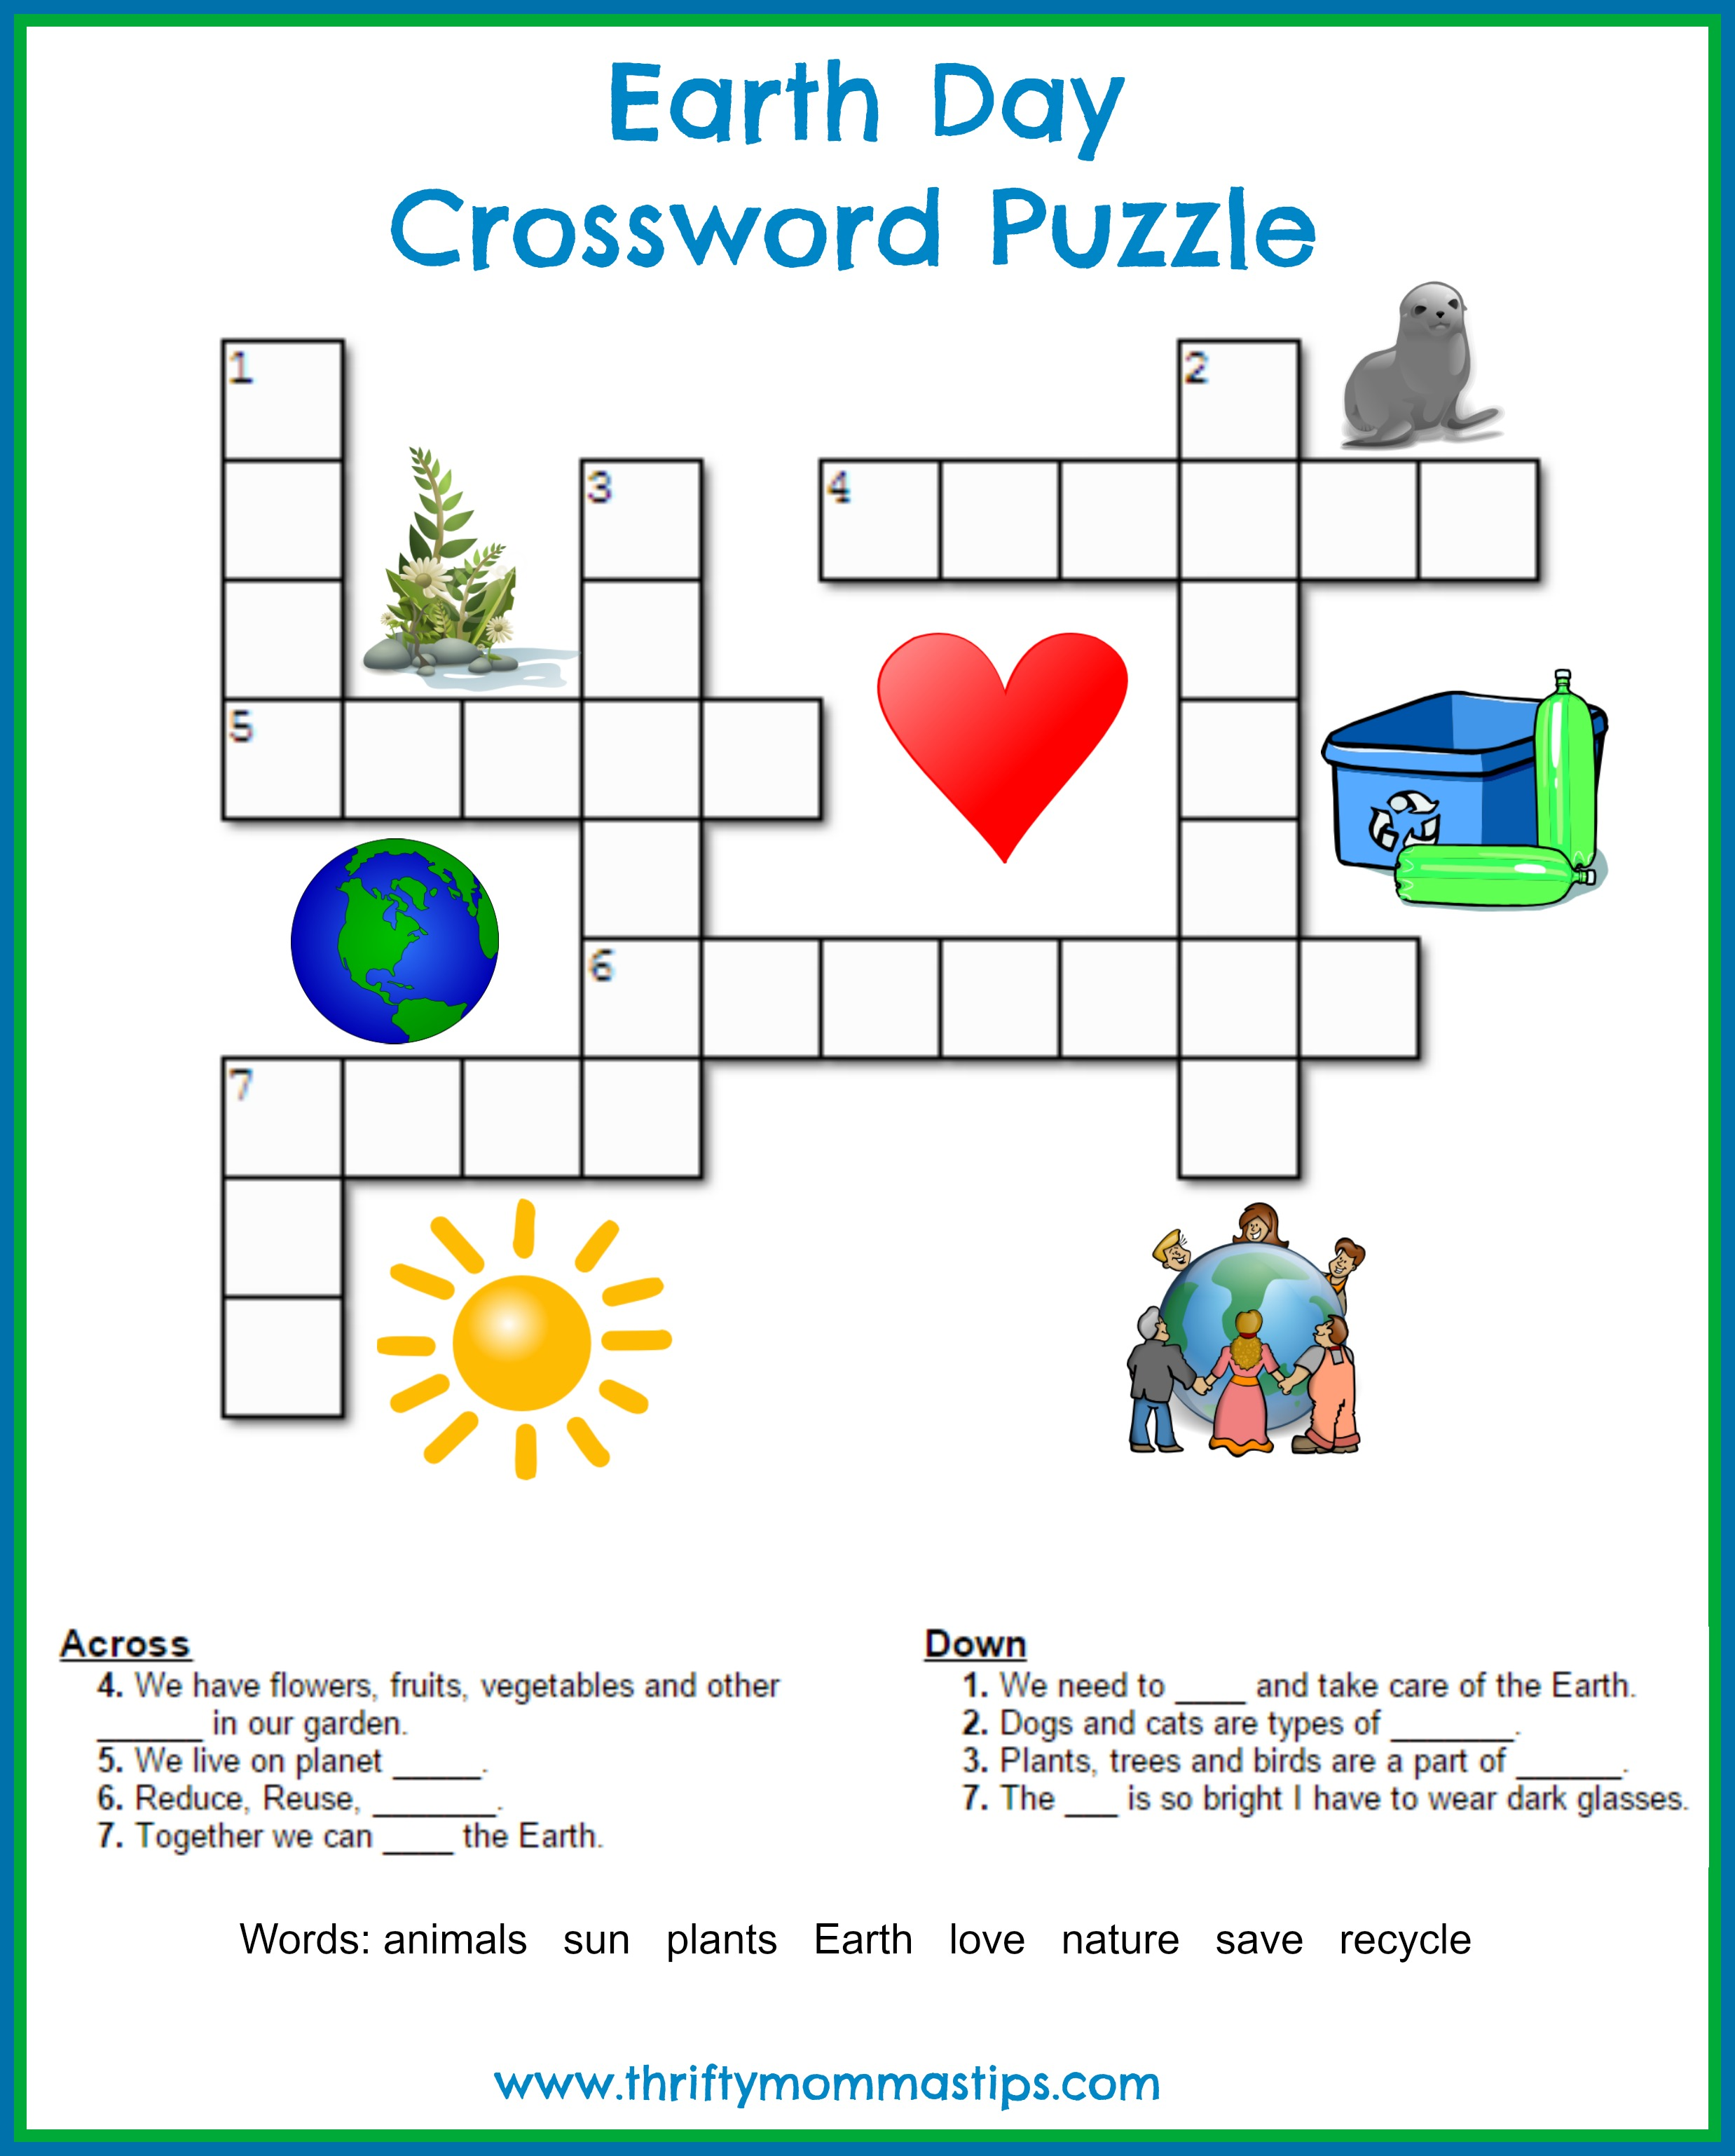 photograph relating to Earth Day Word Search Printable titled Entire world Working day Crossword Puzzle - Thrifty Mommas Pointers